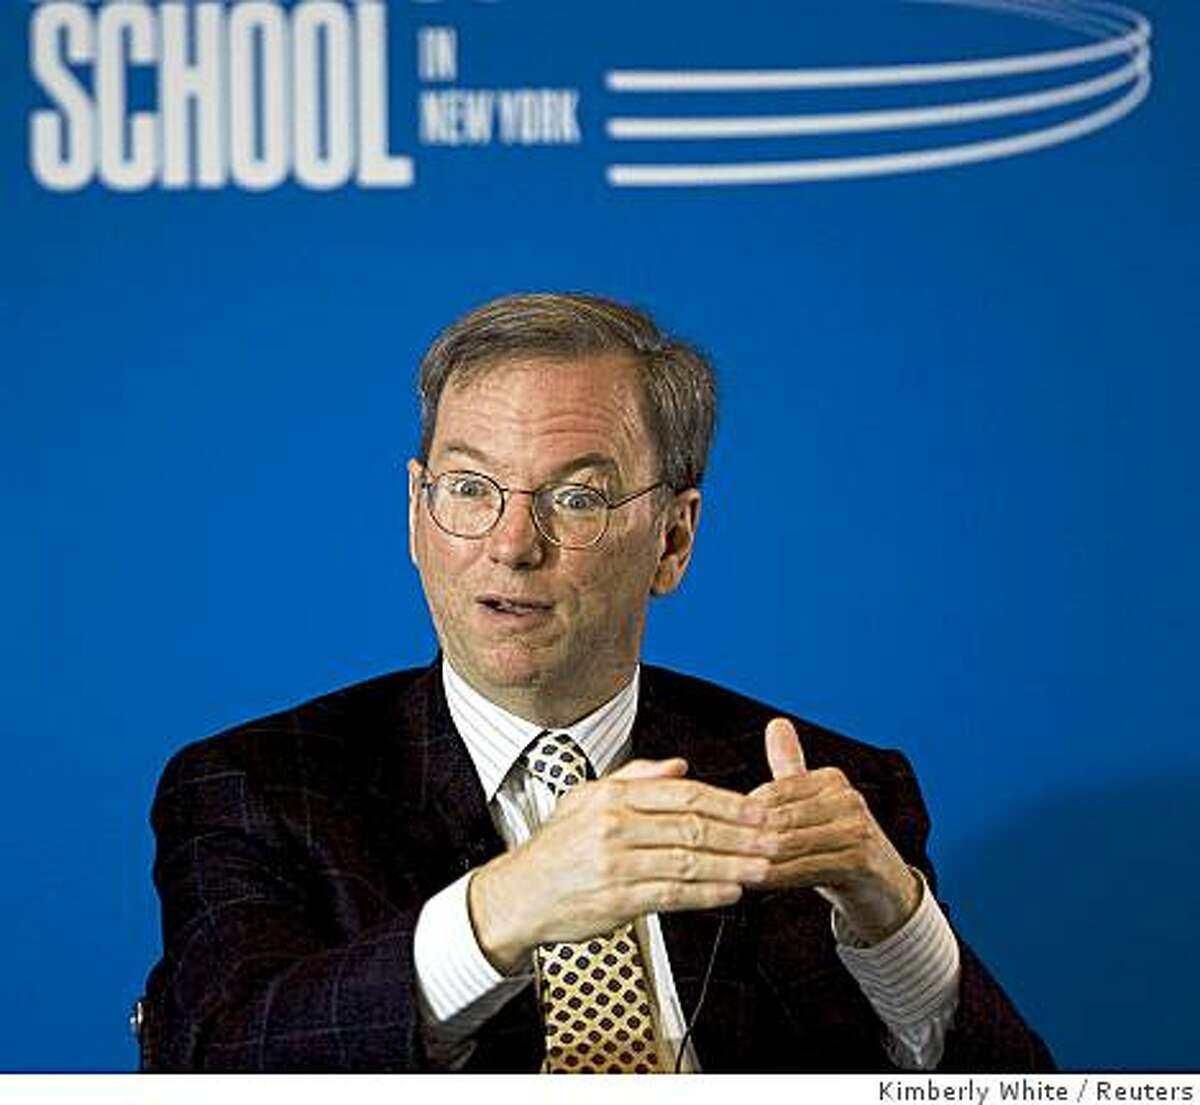 Despite growing signals that Google?s advertising pact with Yahoo may be challenged by regulators, Google CEO Eric Schmidt defended the deal Wednesday and said the company expected to implement it, as planned, in October.?Traffic and revenue have held up well despite uncertain economic conditions,? Eric Schmidt, Google?s chief executive, said.Eric Schmidt, Chairman and chief executive of Google Inc., speaks at an event held by Syracuse University in San Francisco, California, June 11, 2008. Schmidt discussed the company's motto